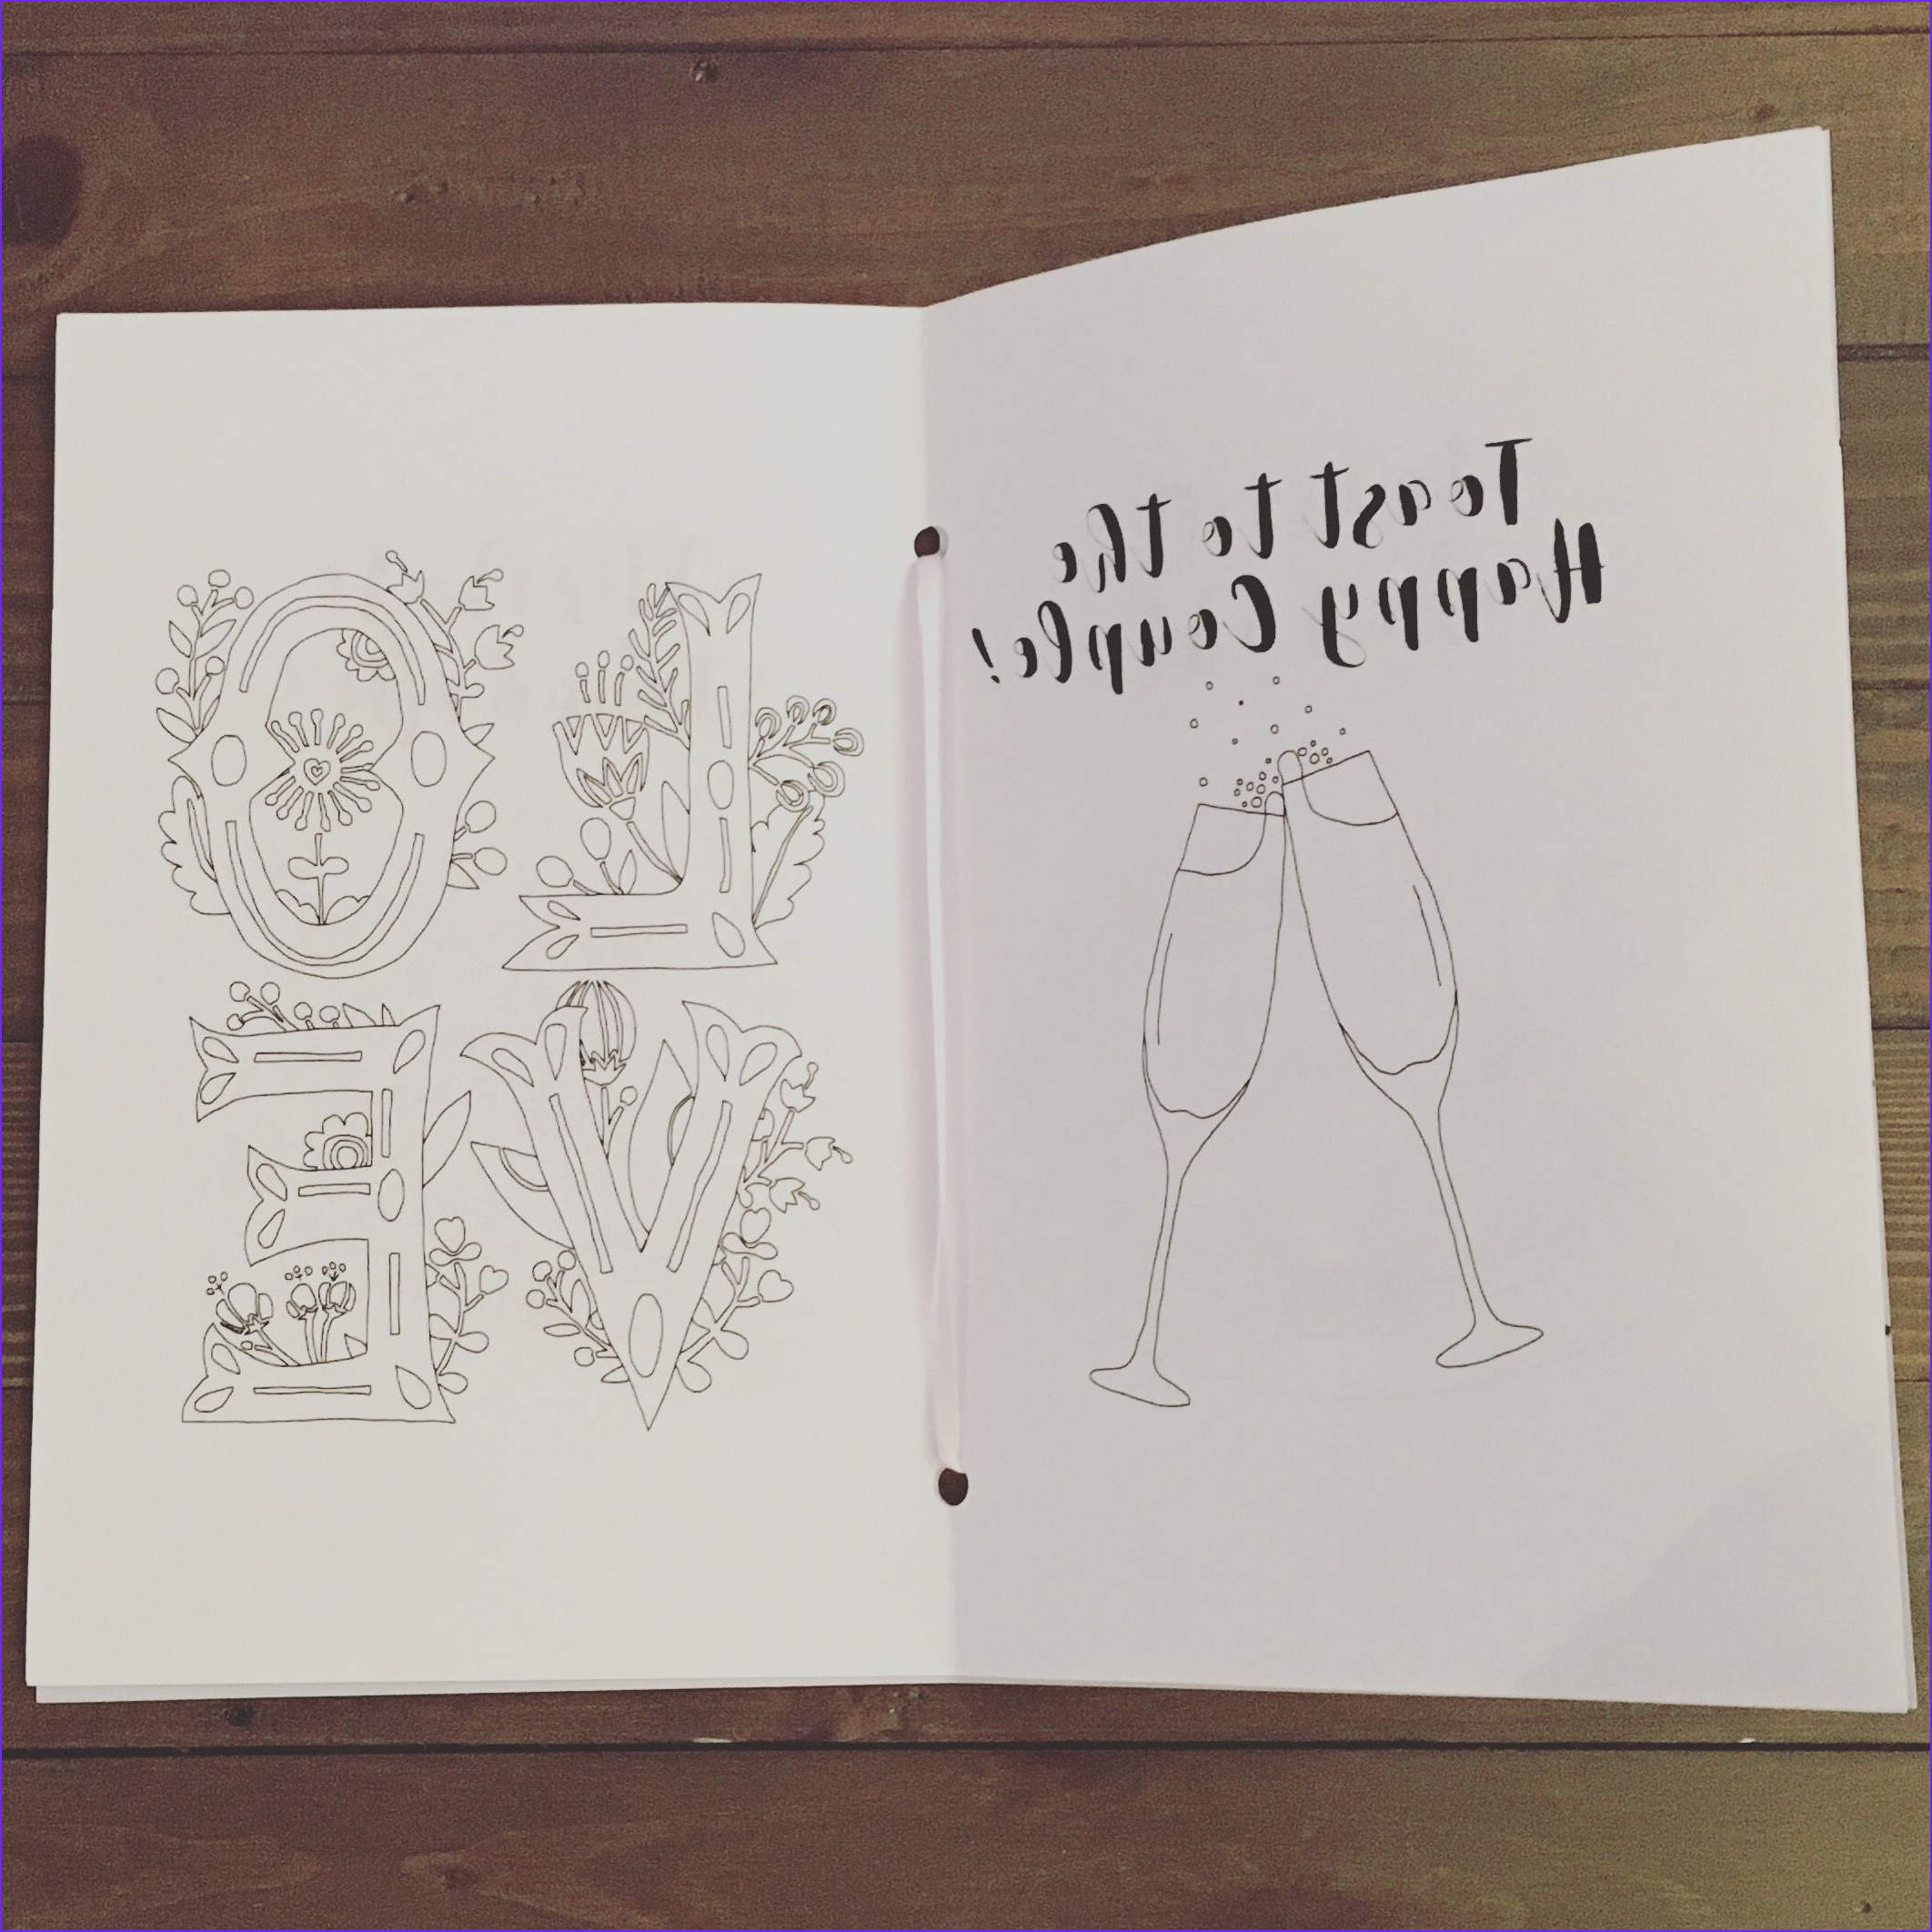 Wedding Themed Coloring Page Best Of Photos Toast To The Happy Couple Wedding Themed Coloring Page